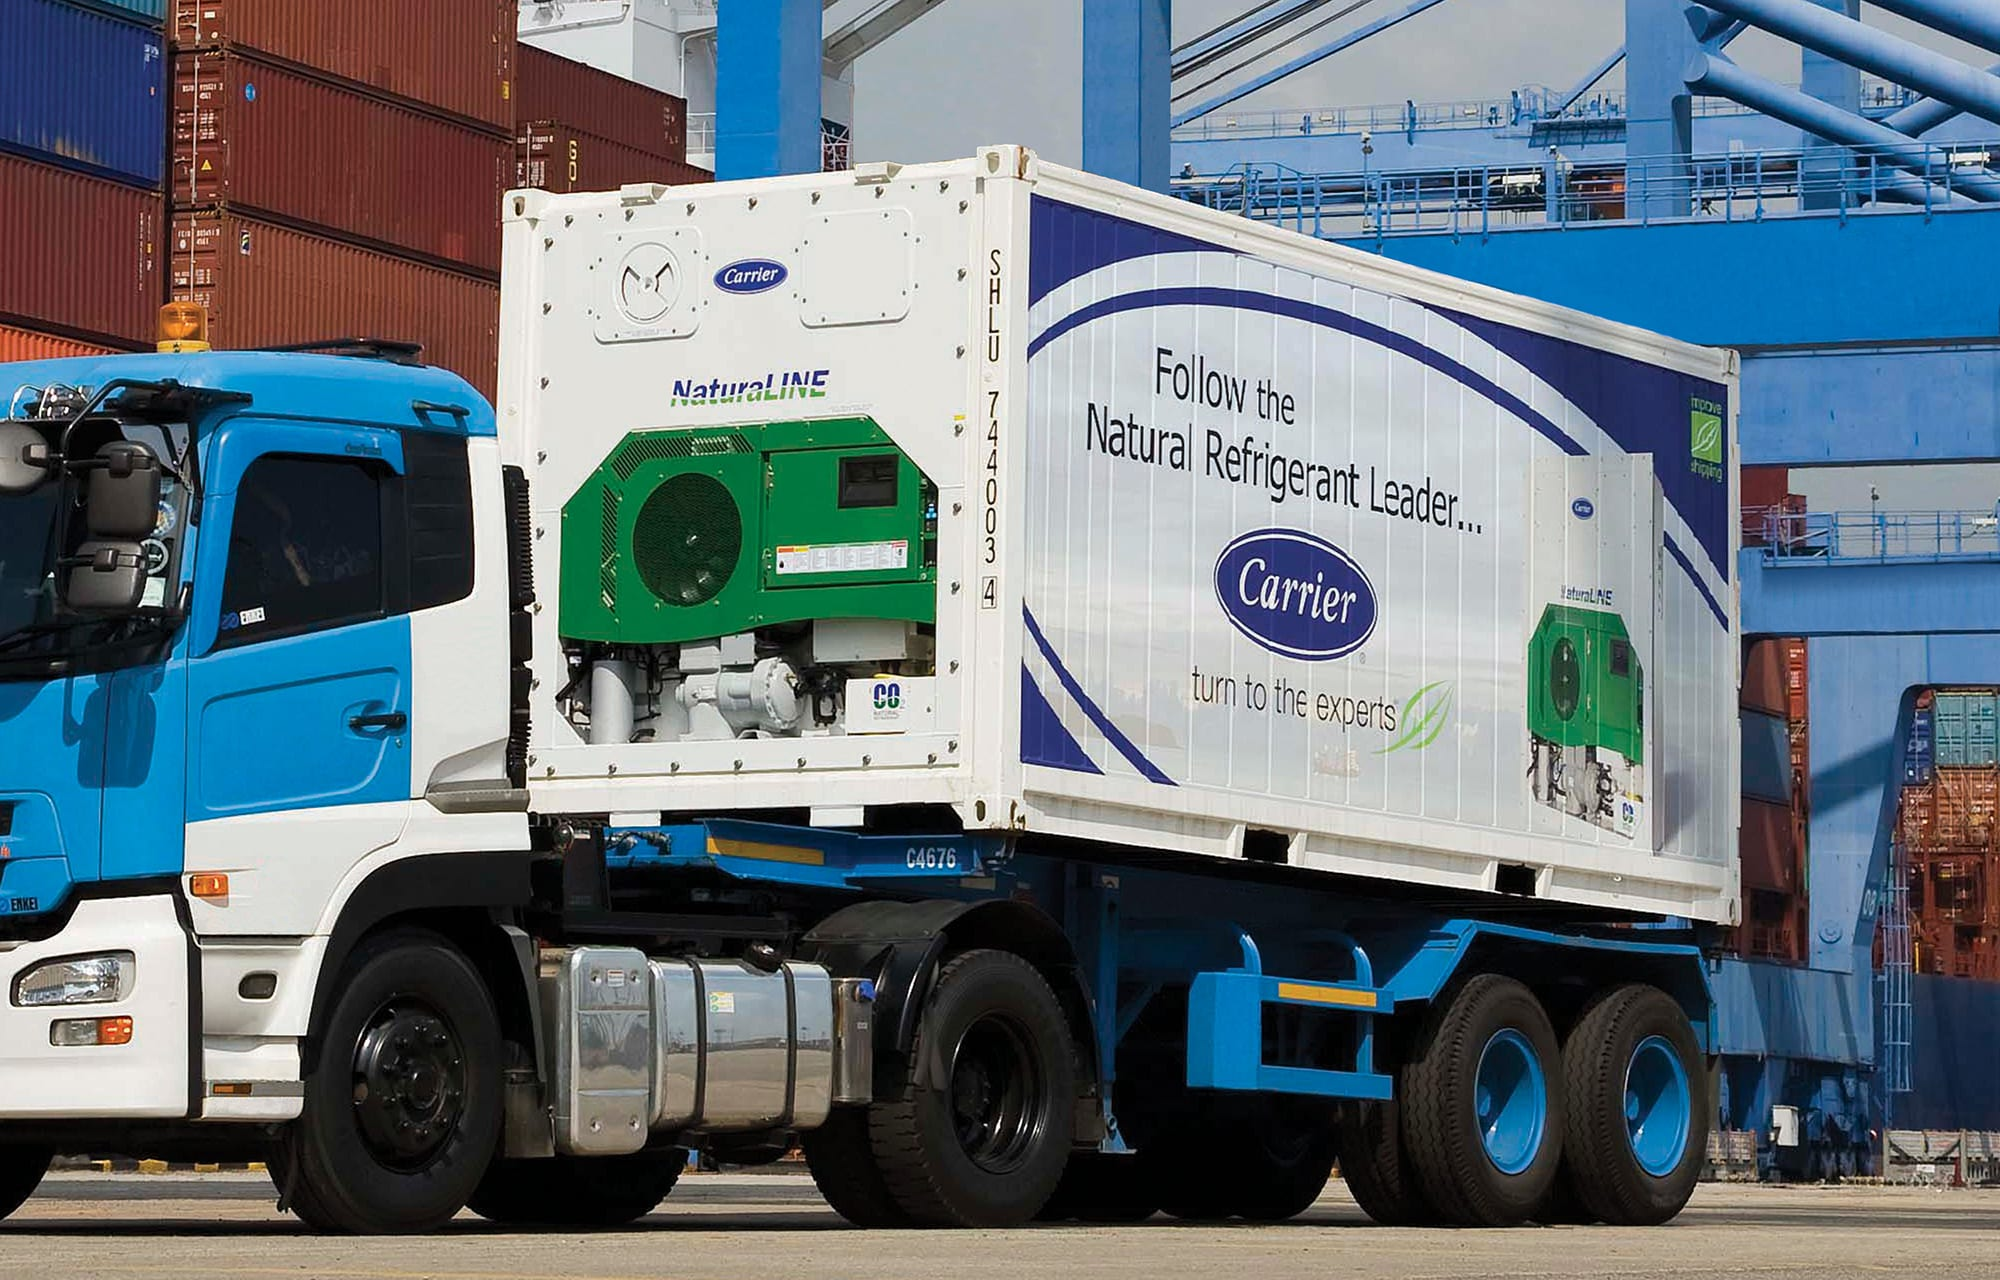 carrier-transicold-naturalline-refrigerated-container